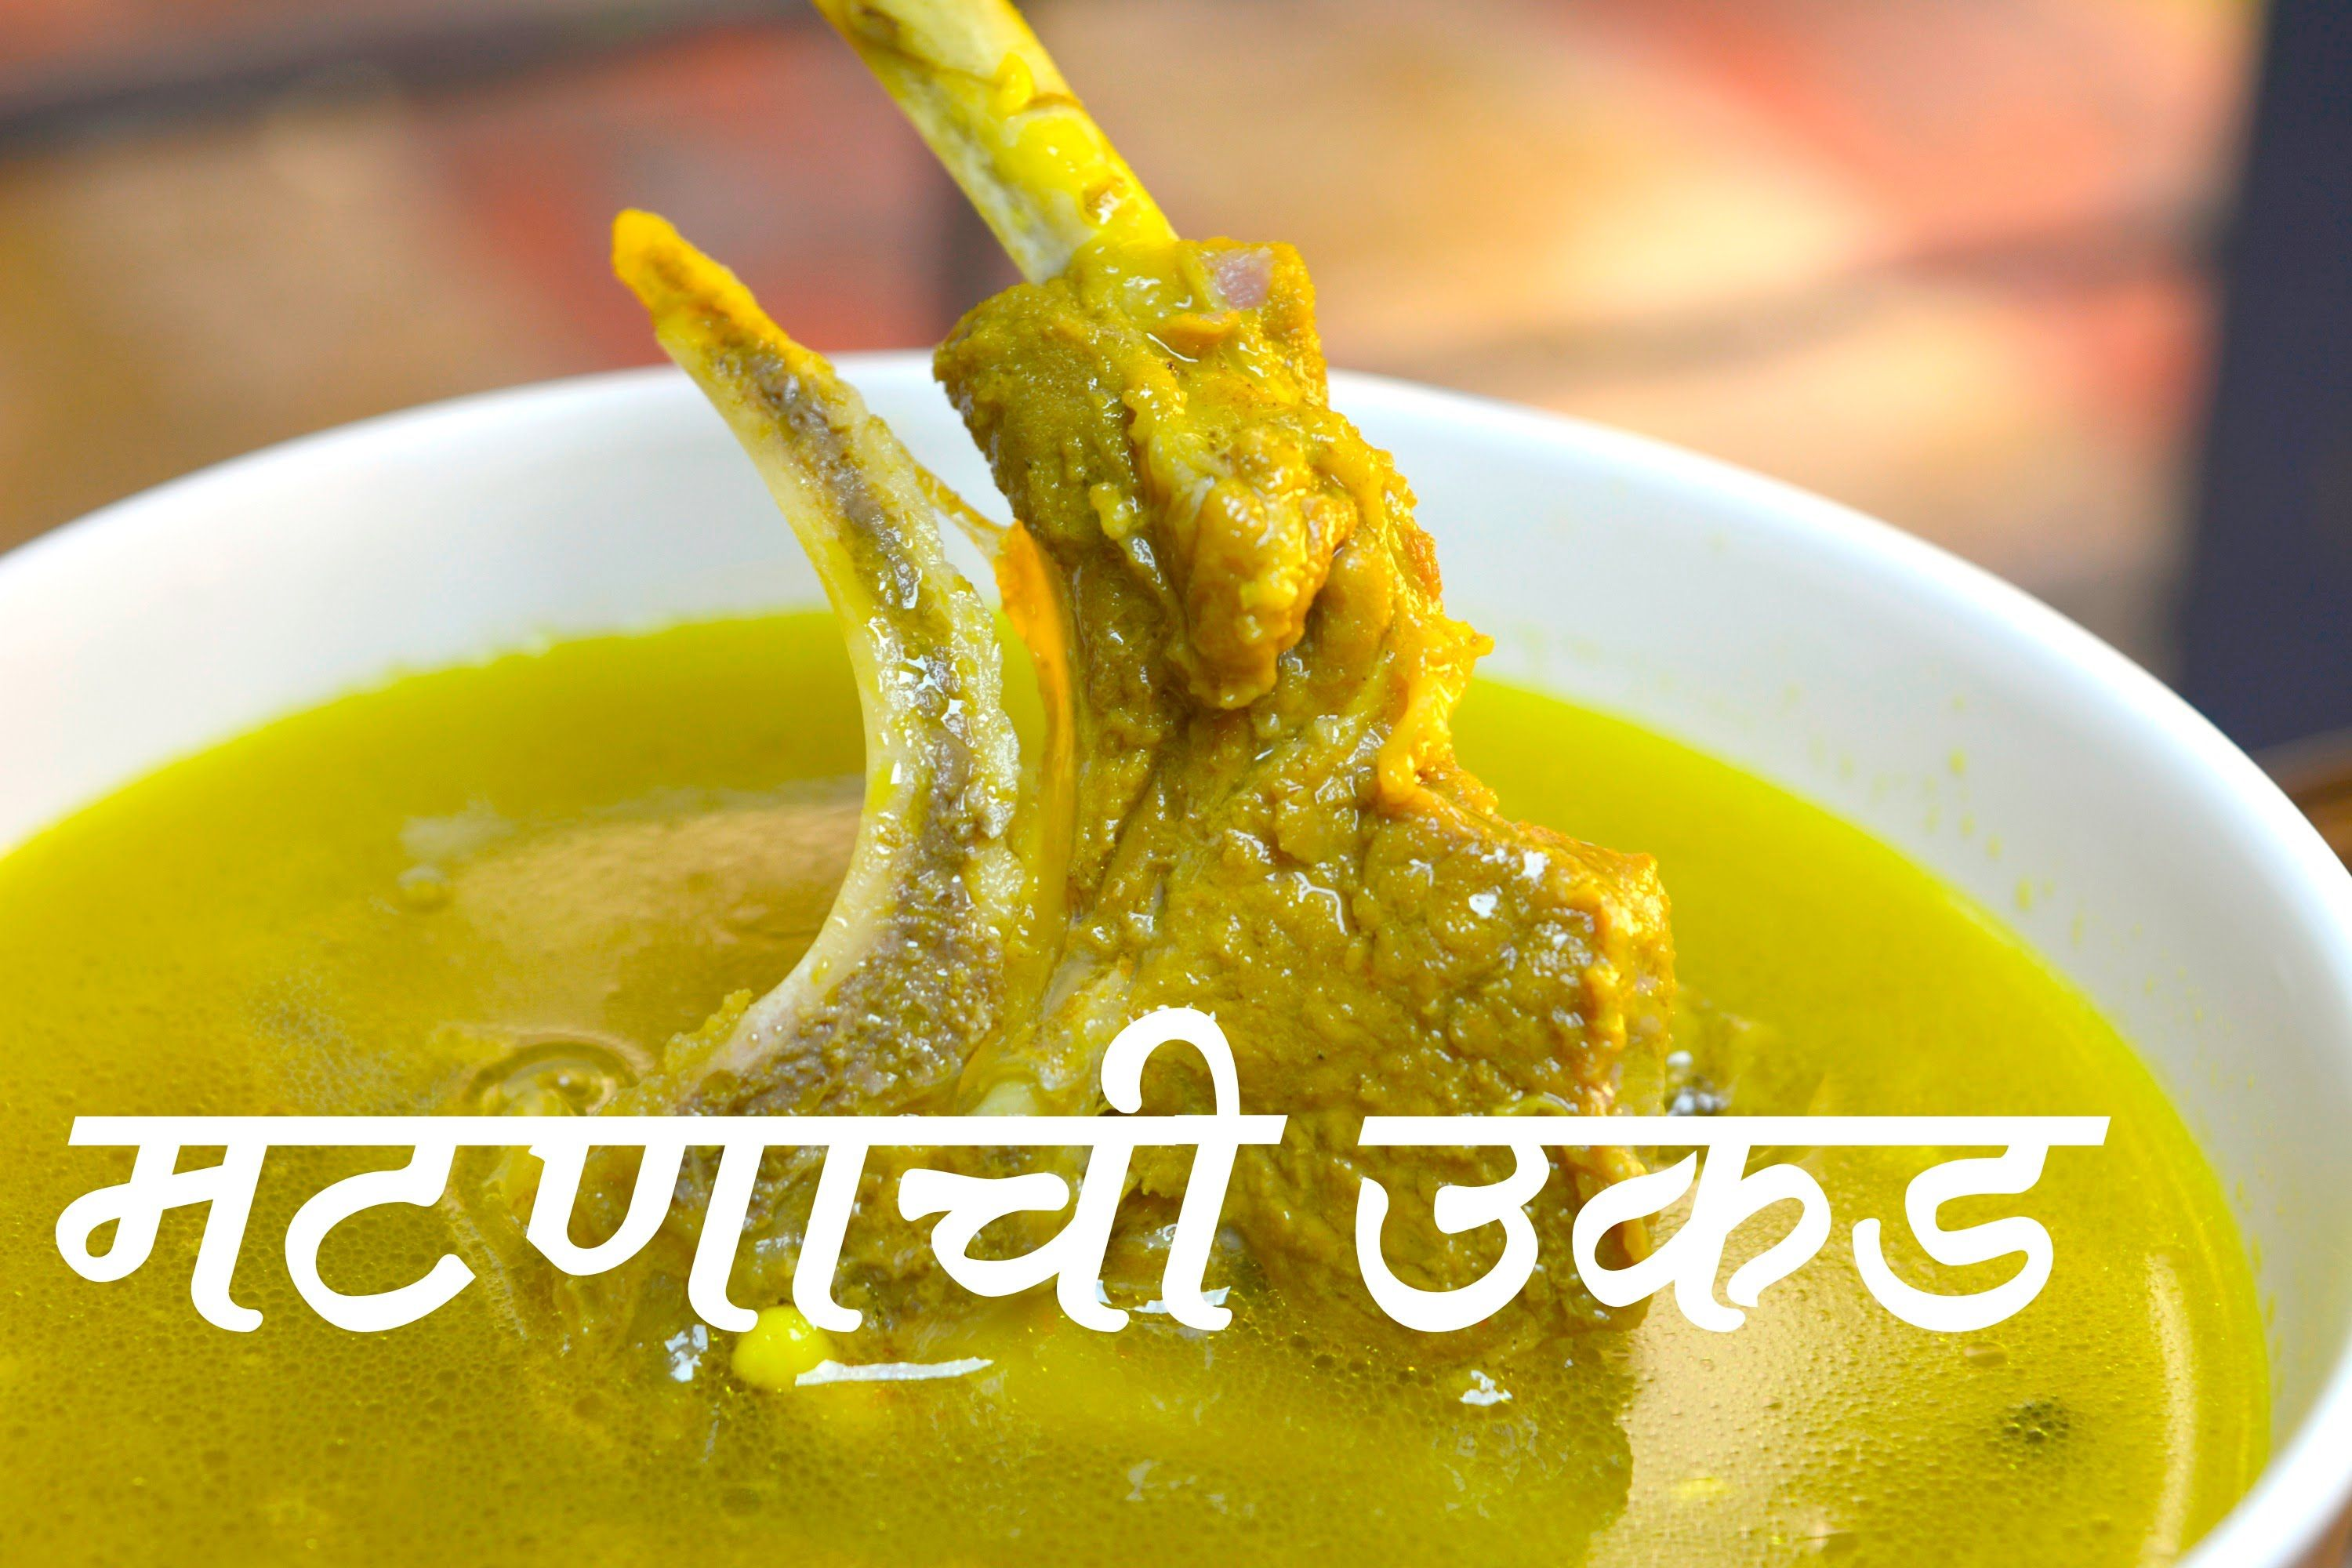 Mutton ukad full recipe authentic maharashtrian mutton ukad full recipe authentic maharashtrian food forumfinder Gallery